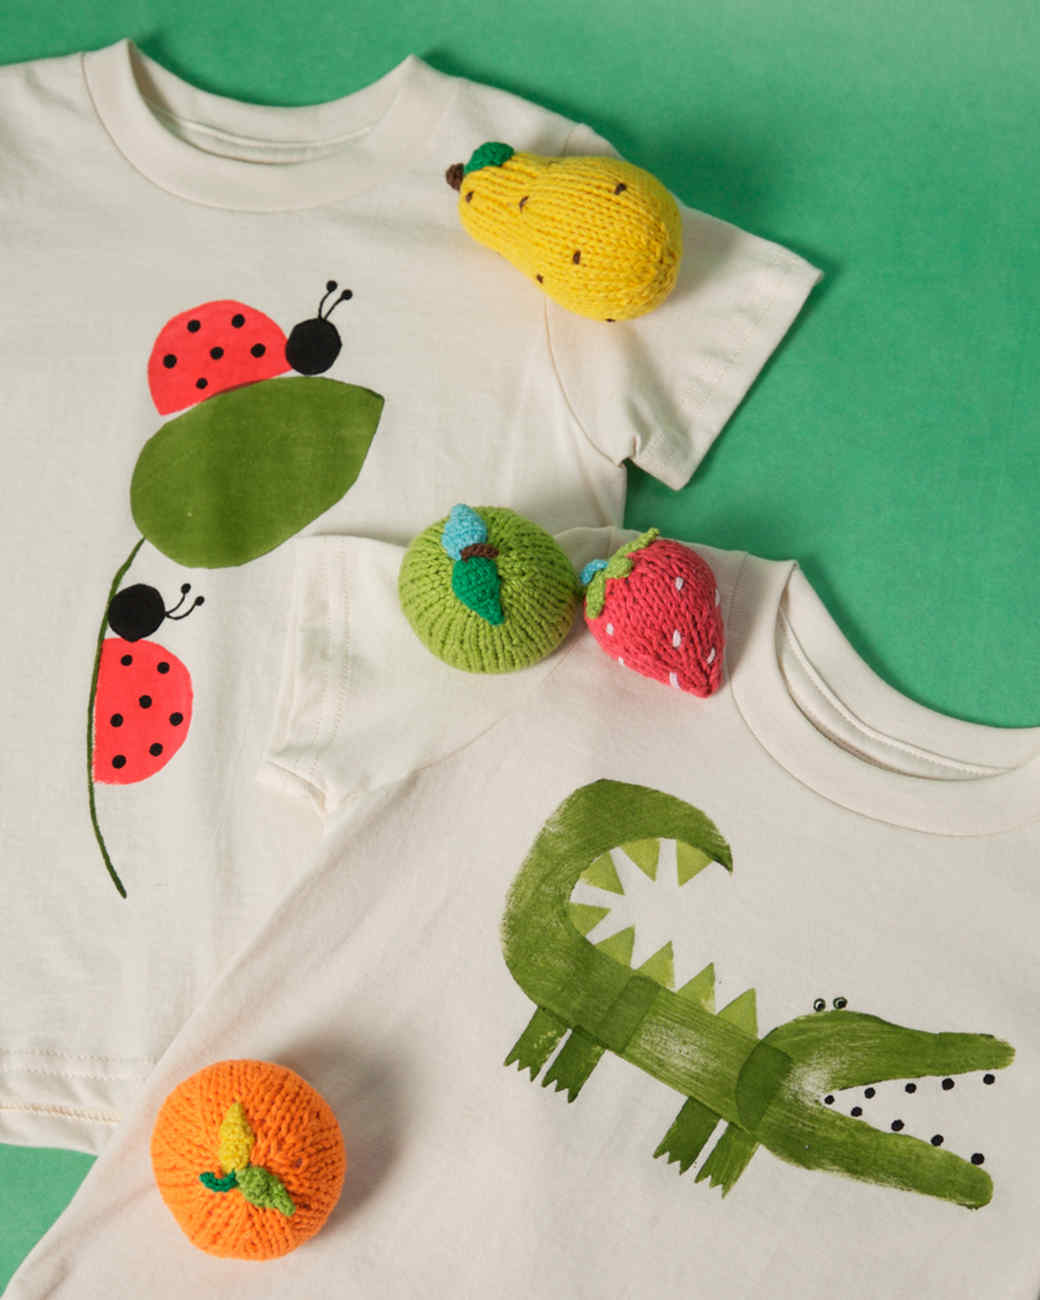 Potato-Print Baby Clothes